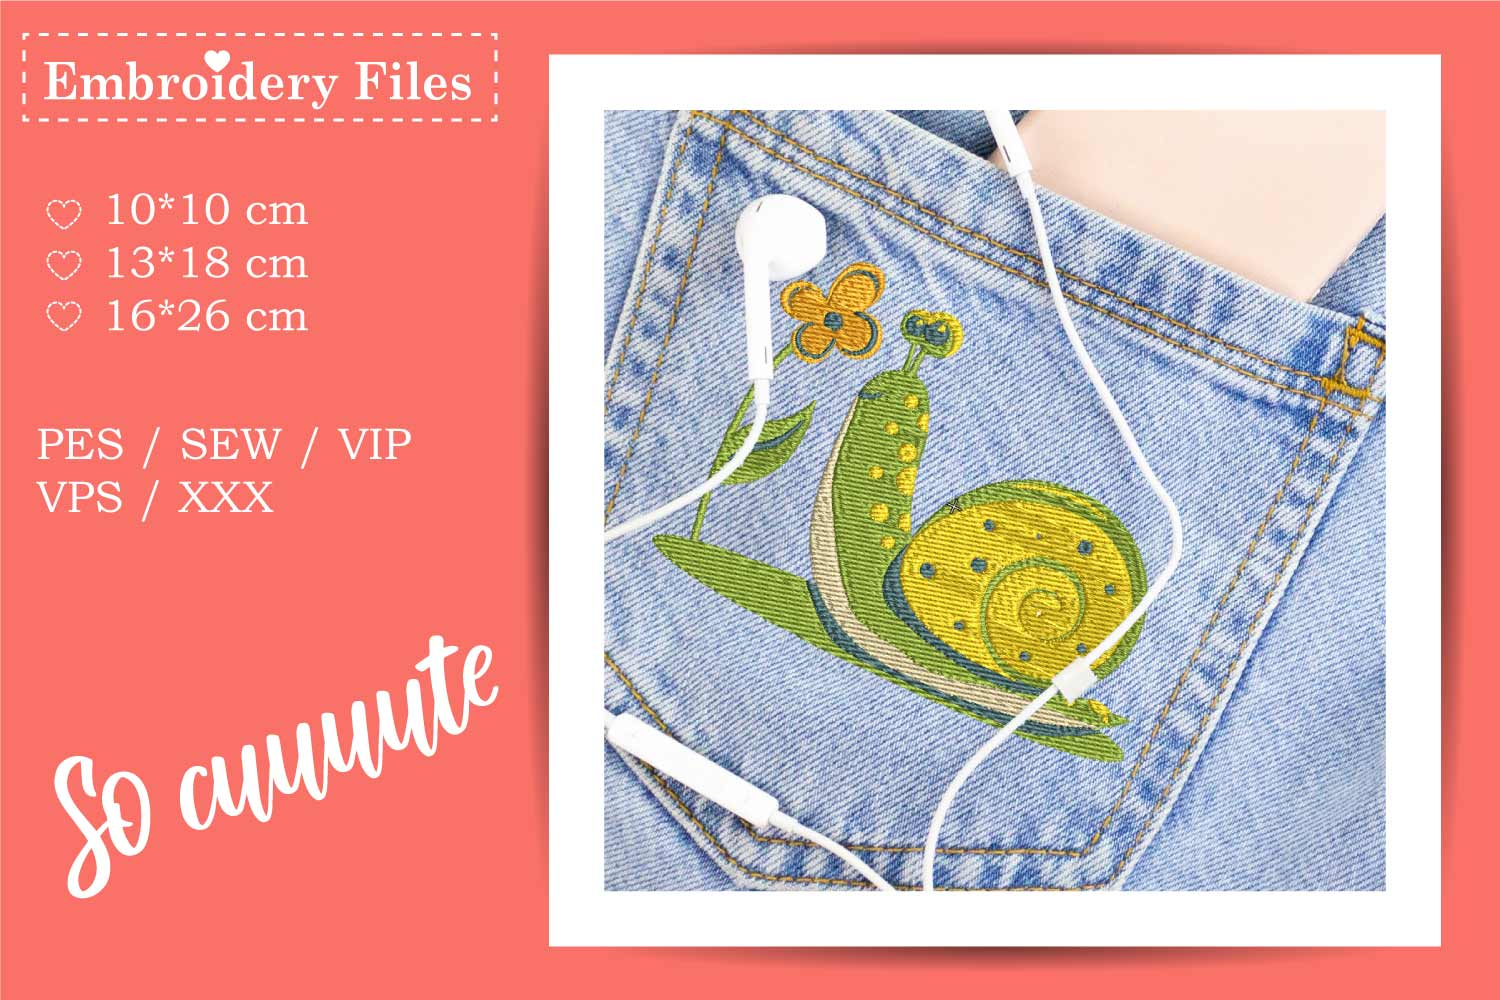 A cute Snail - Embroidery File for Beginners example image 2